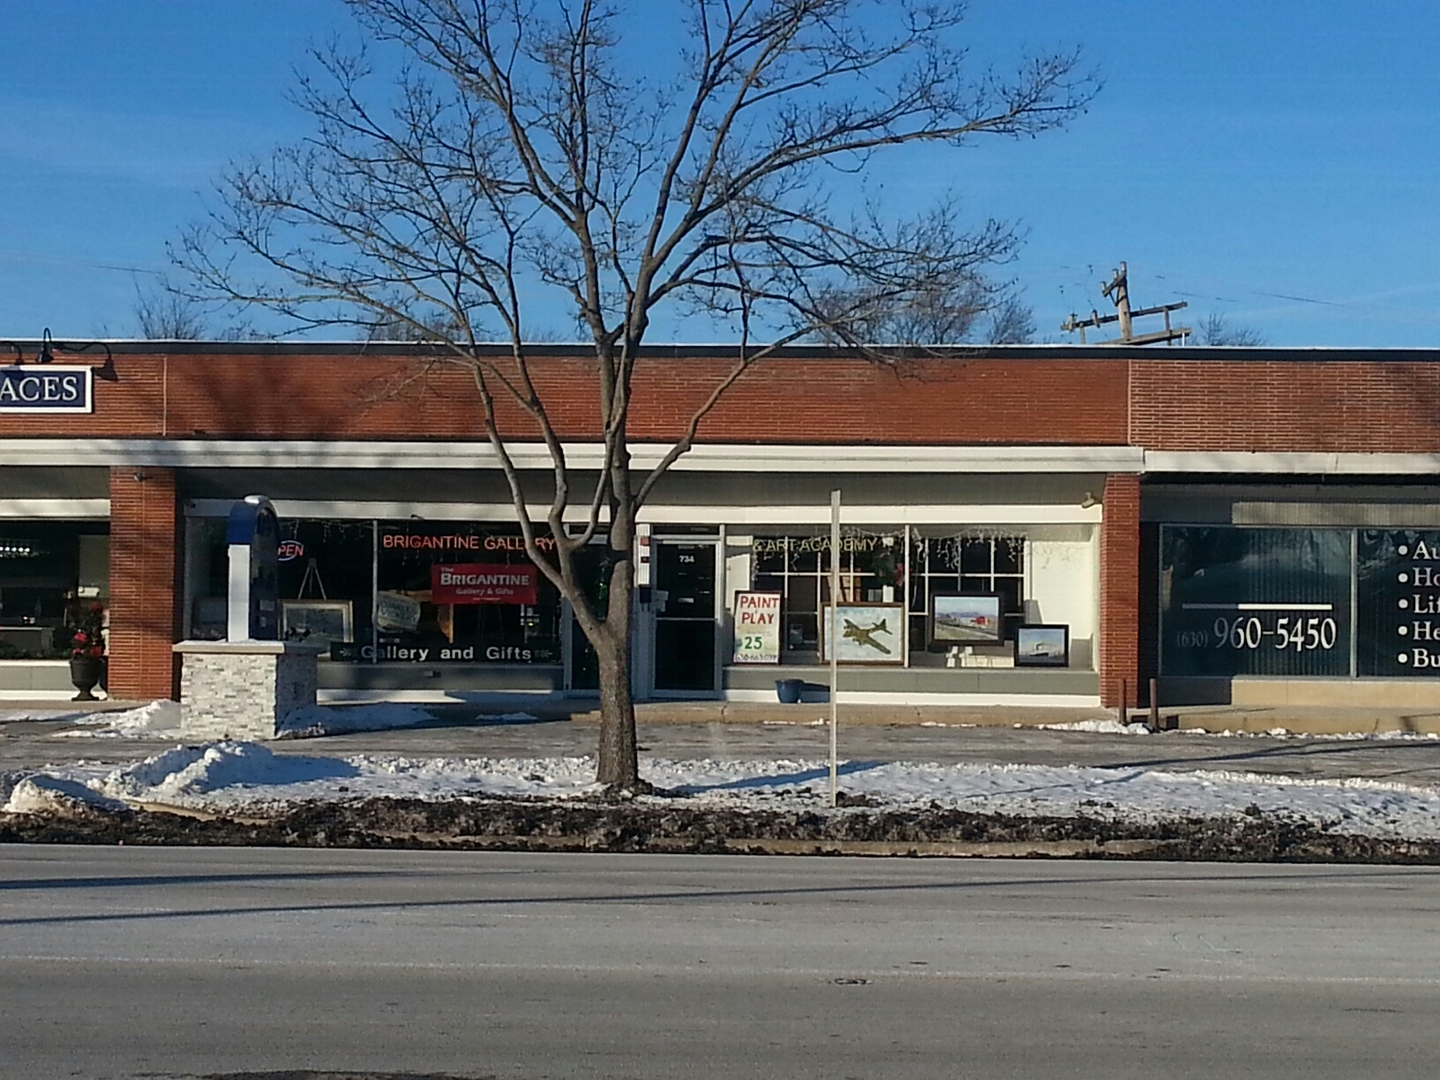 734 Ogden ,Downers Grove, Illinois 60515